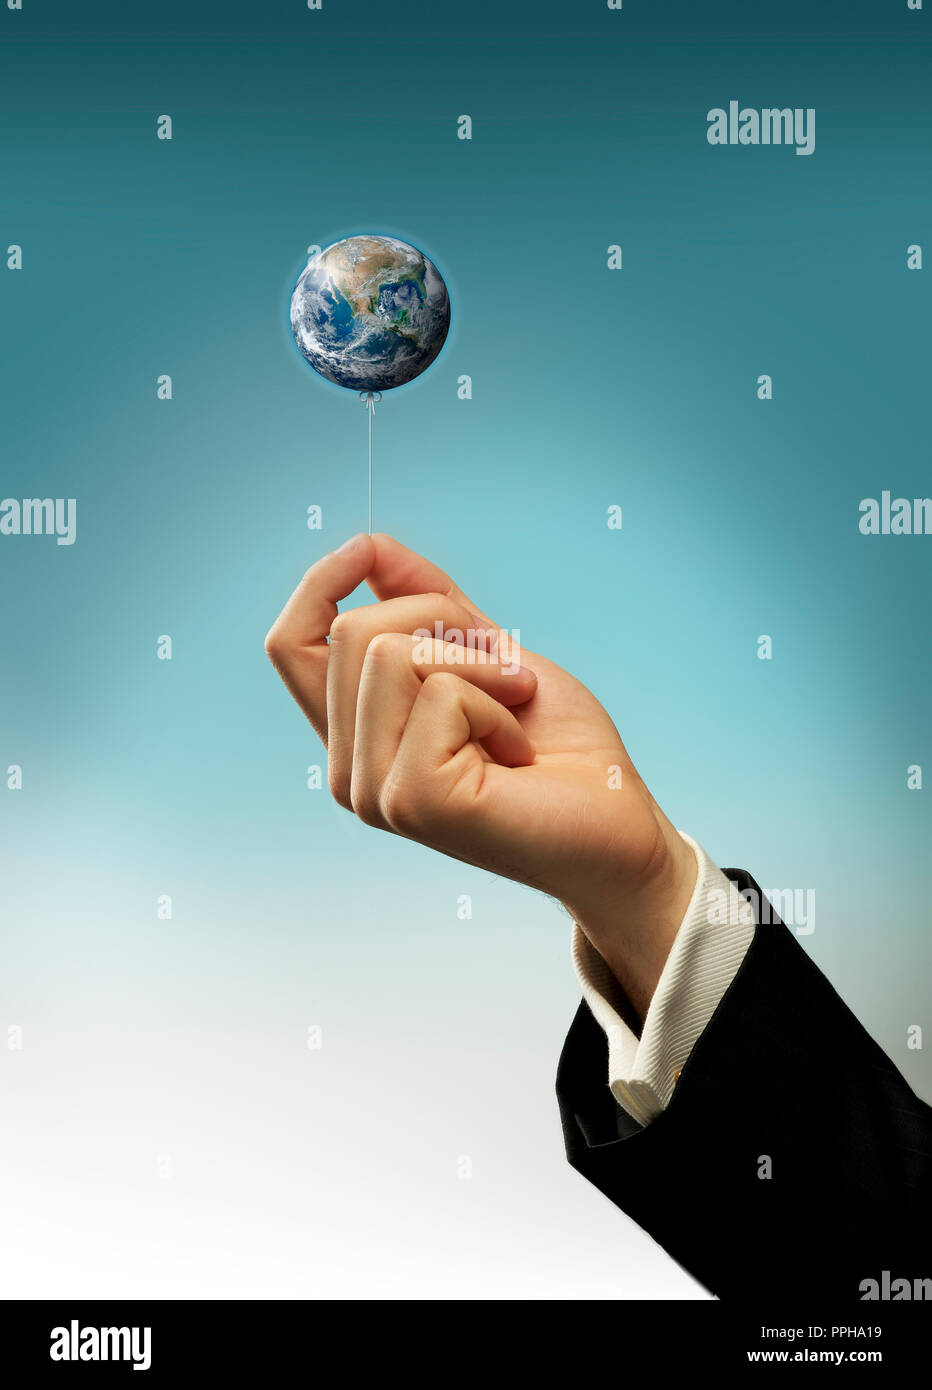 Concept Hand of a business man holding a string of earth balloon - Stock Image